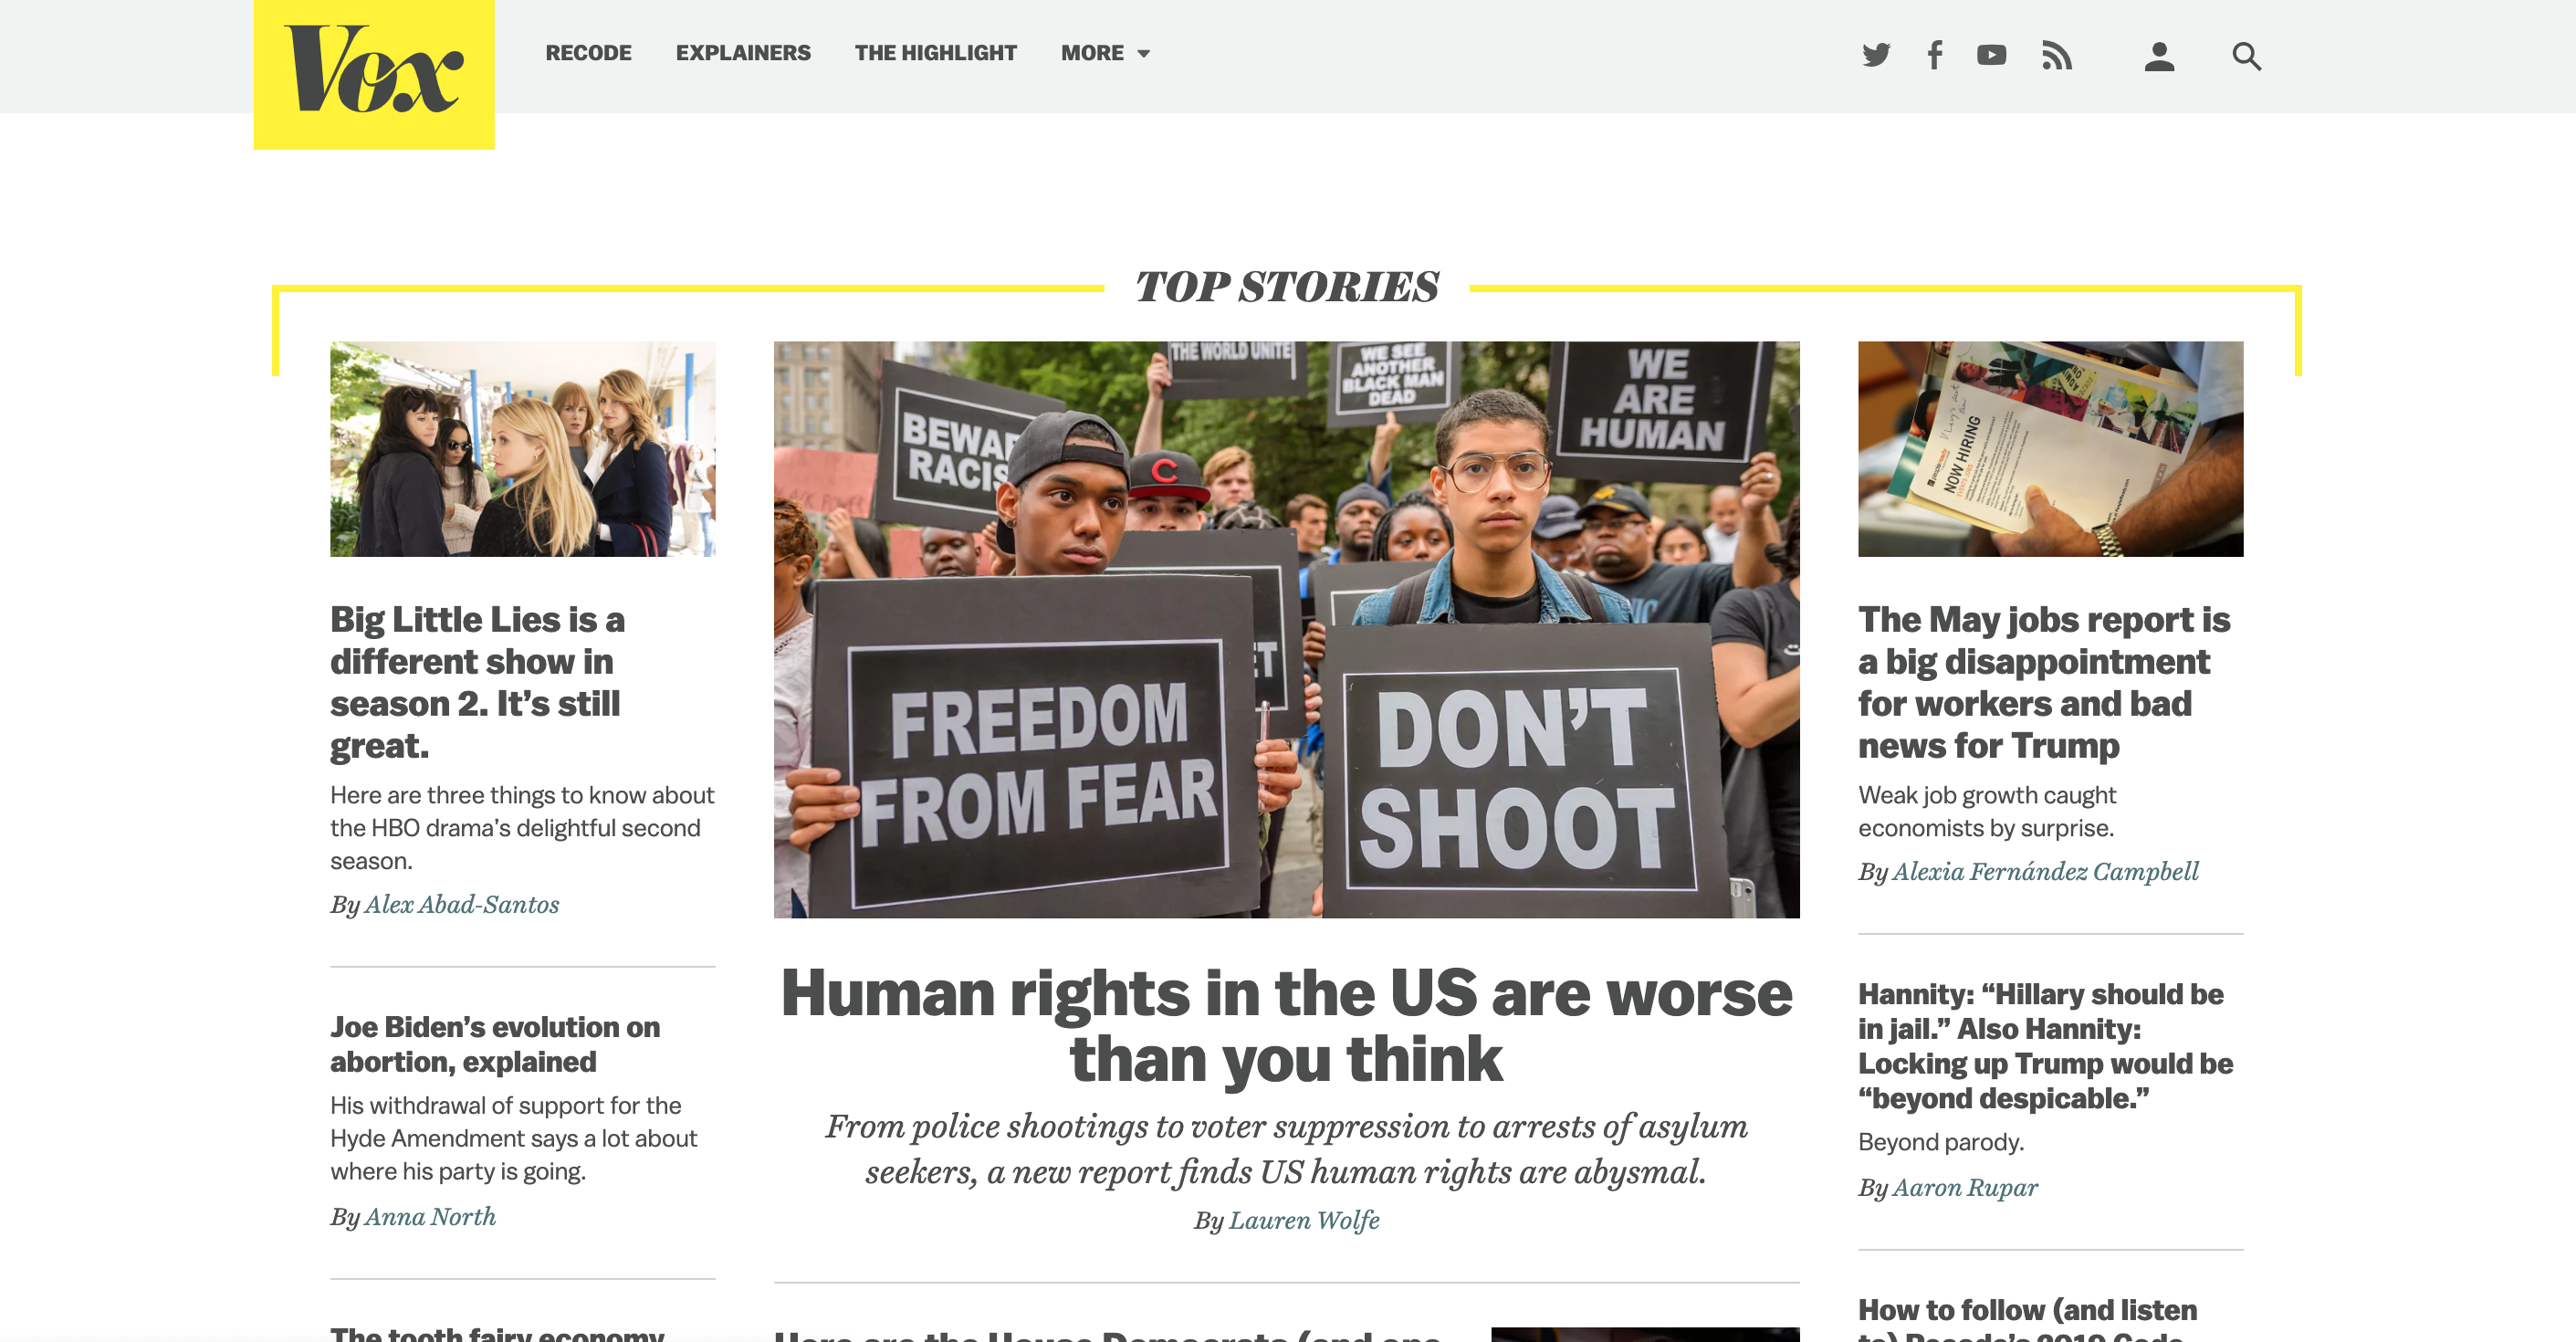 Screenshot showing article on HRMI on the front page of Vox